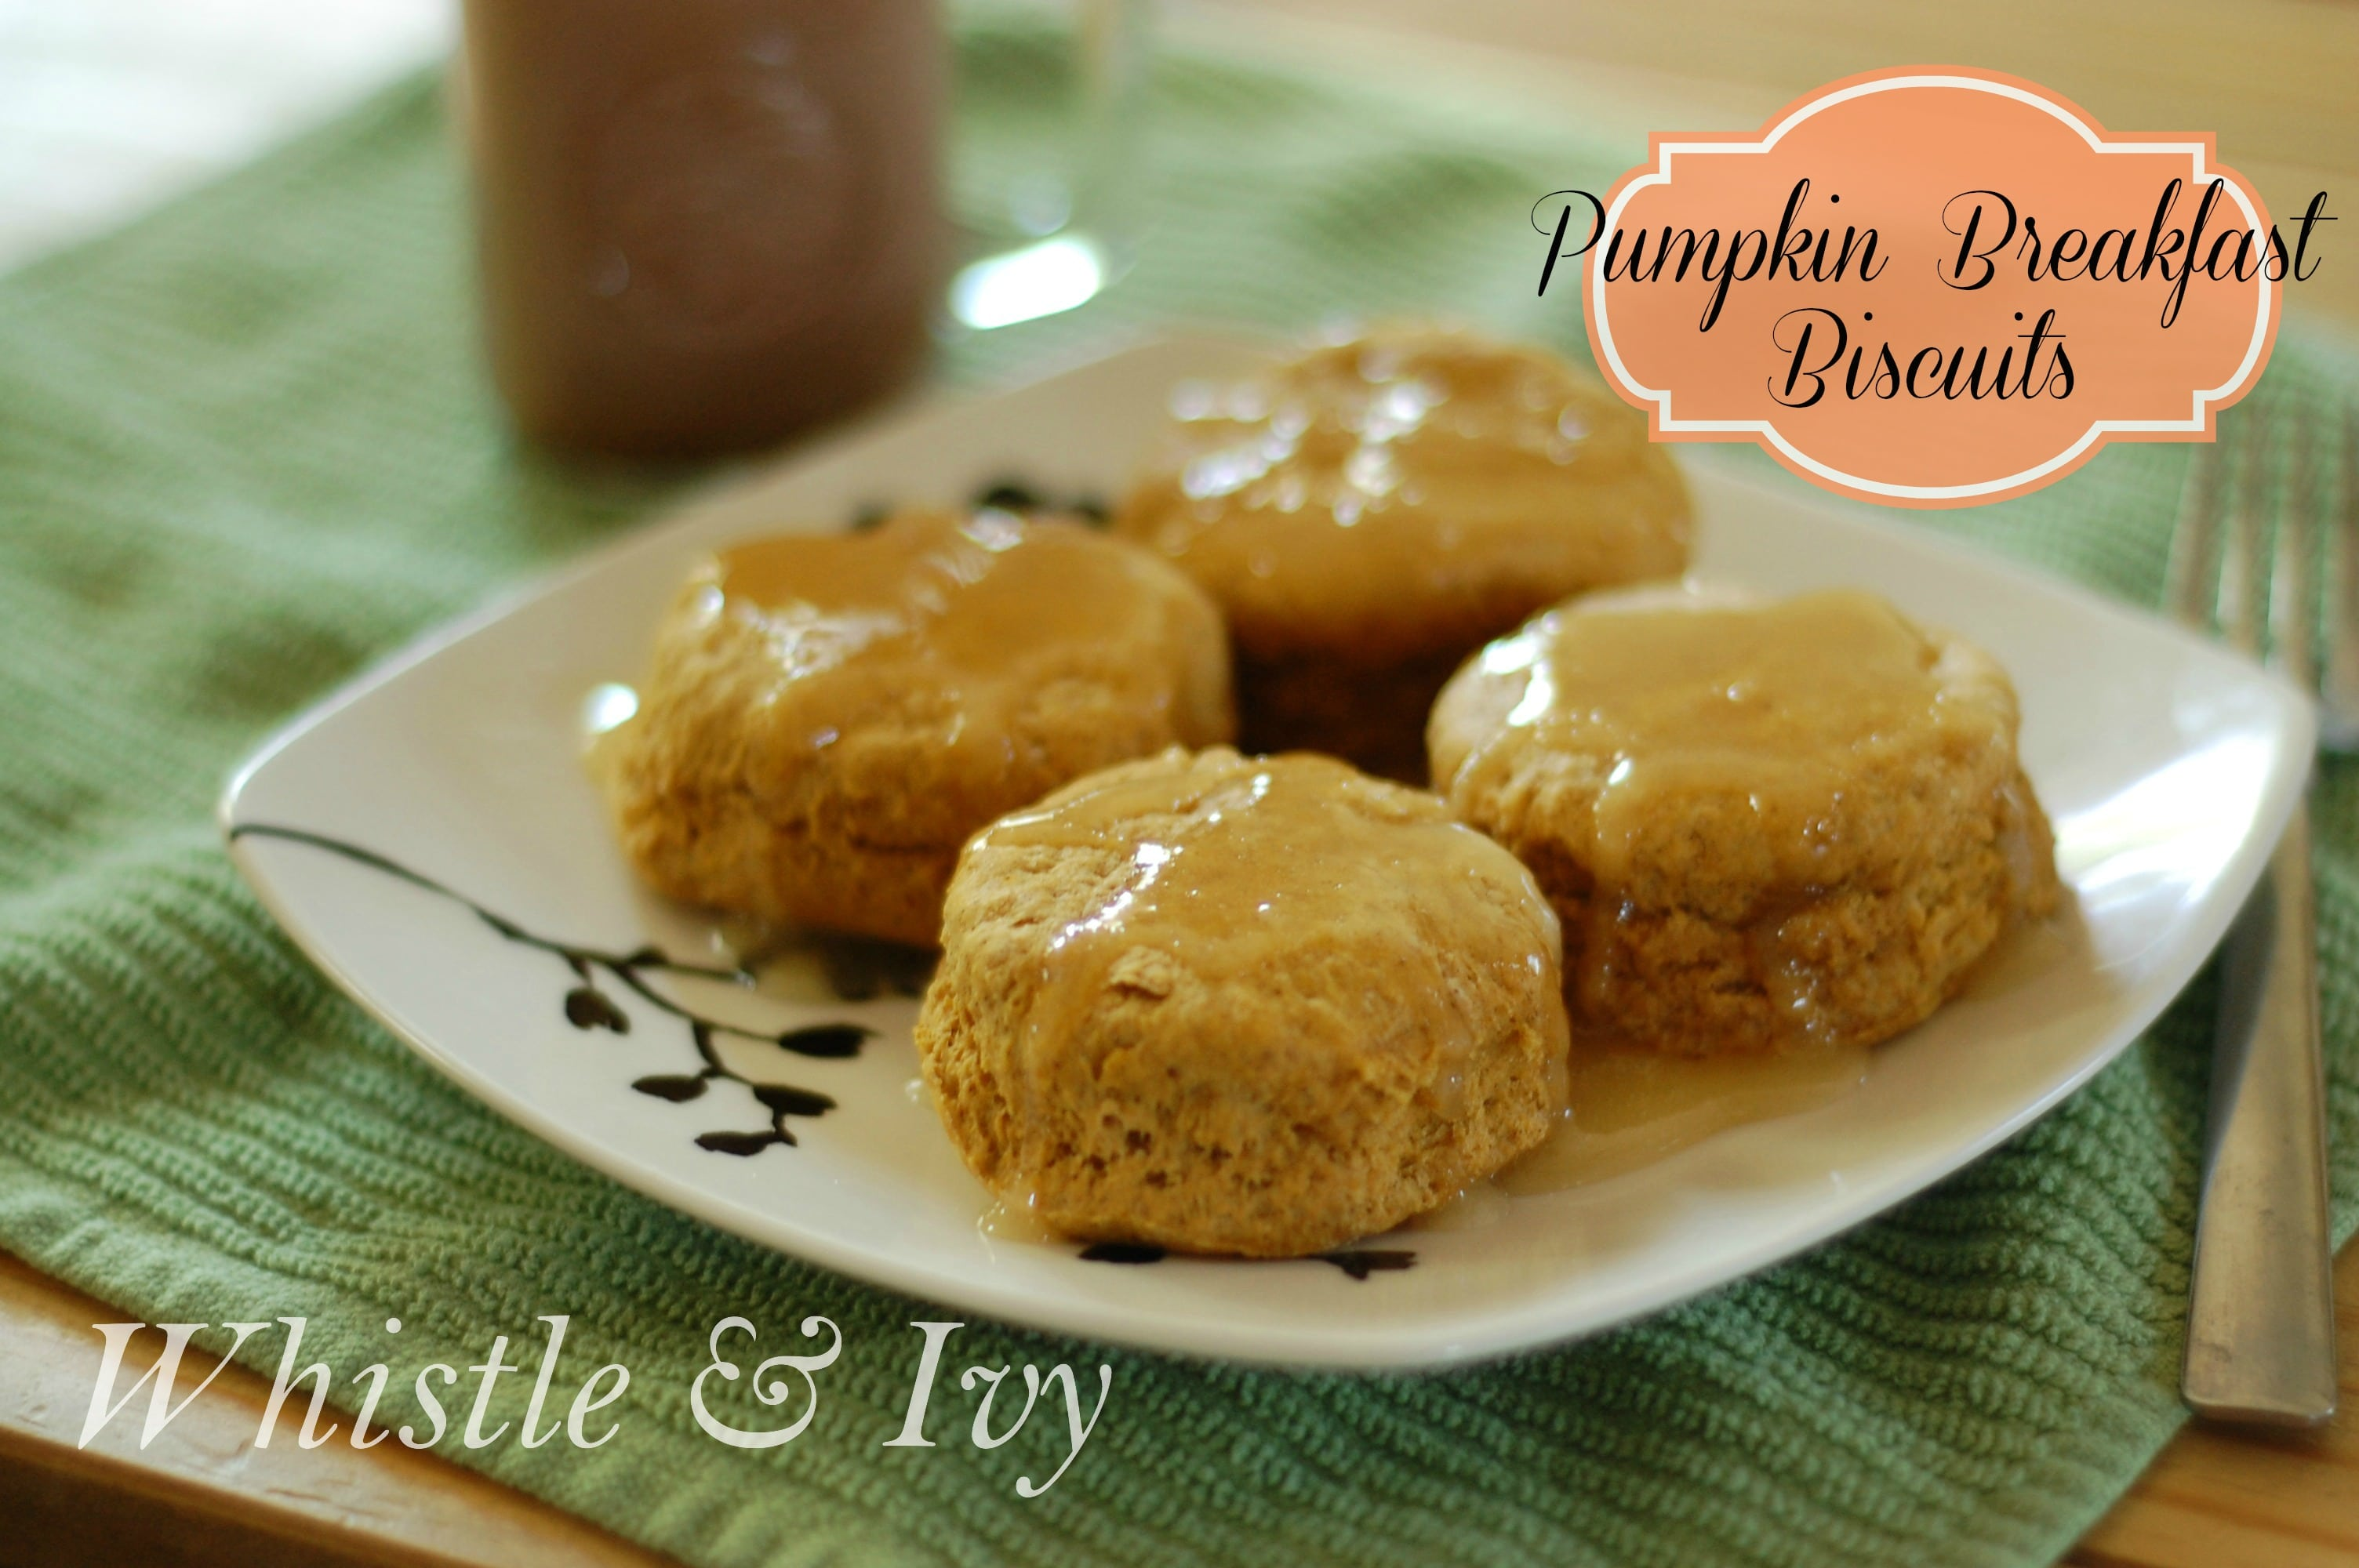 Pumpkin Spice Breakfast Biscuits - Perfect Fall Breakfast Recipe!